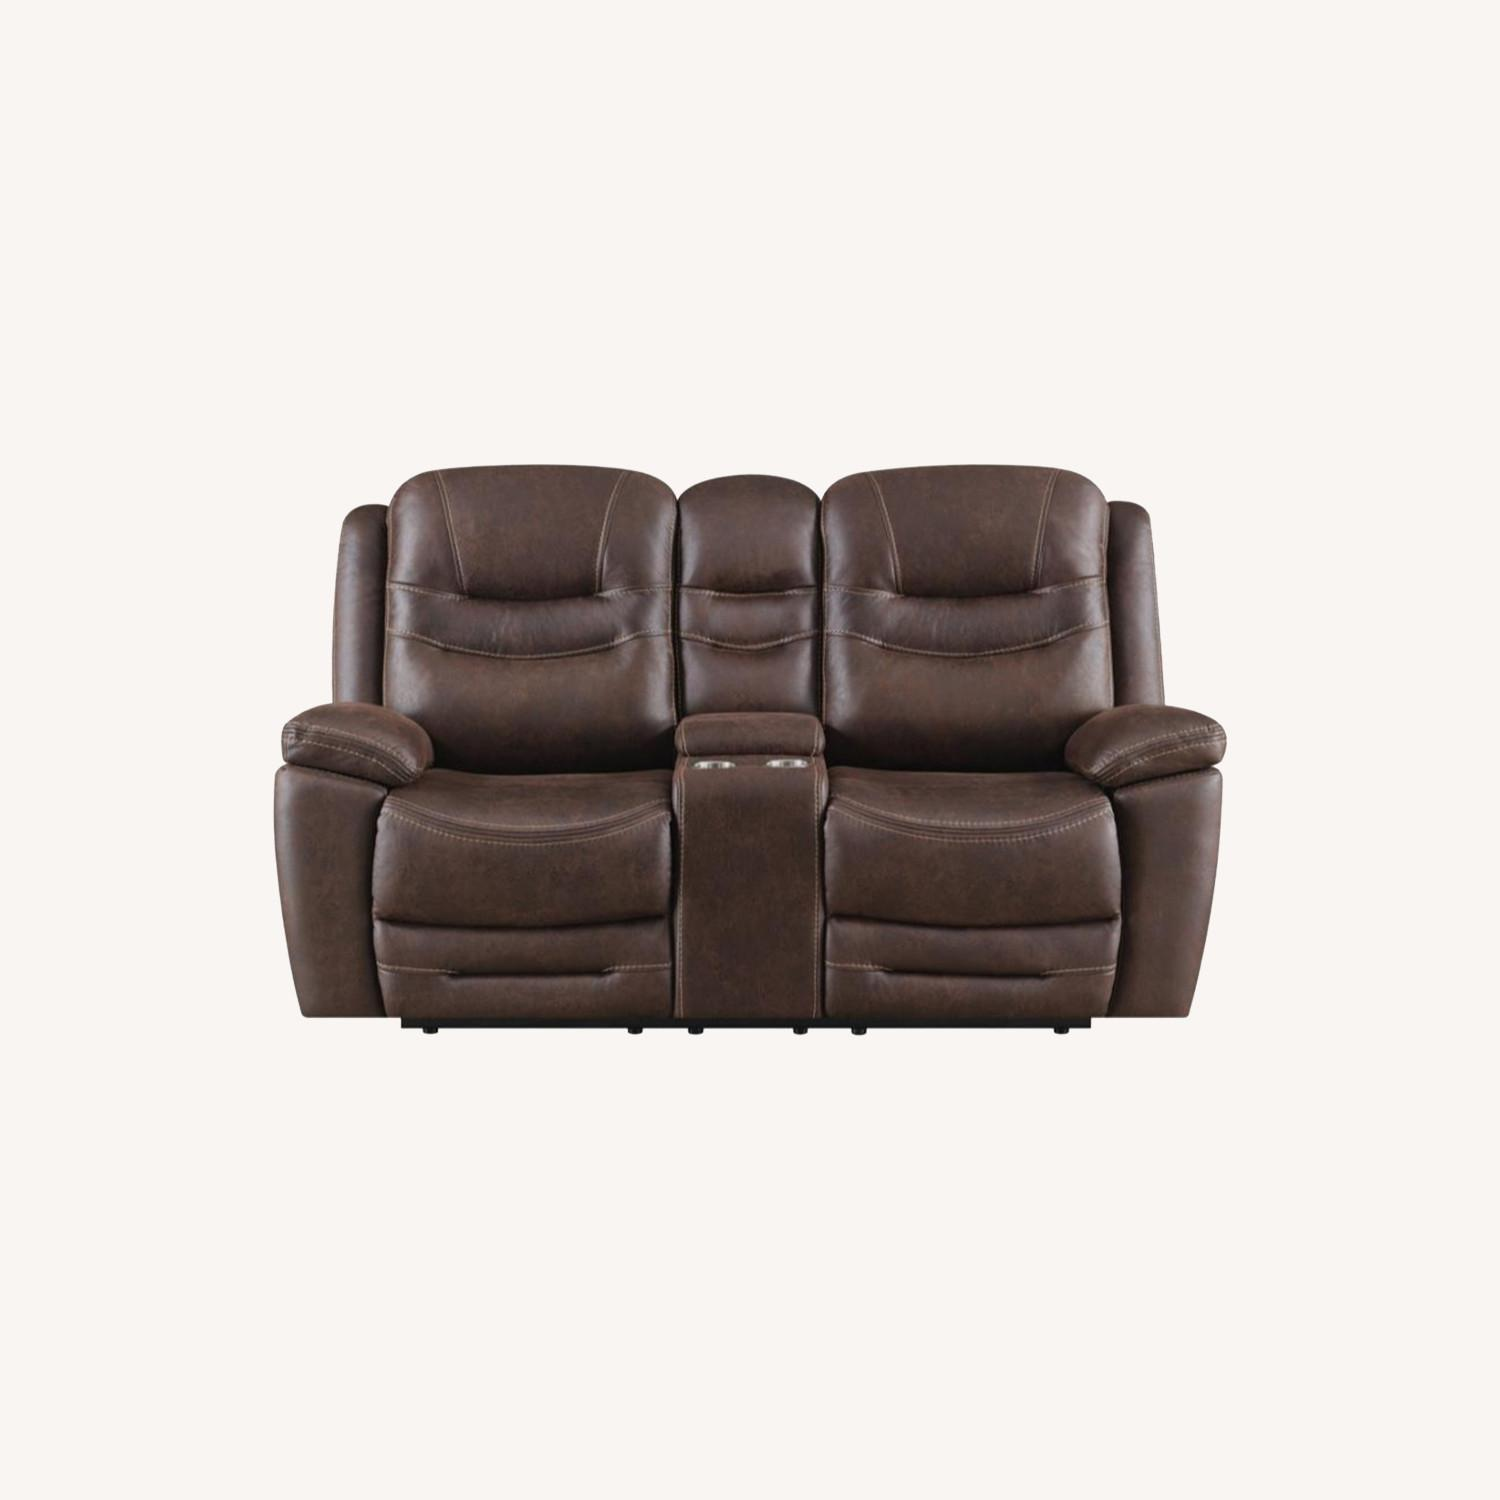 Power Loveseat Recliner In Chocolate Upholstery - image-8